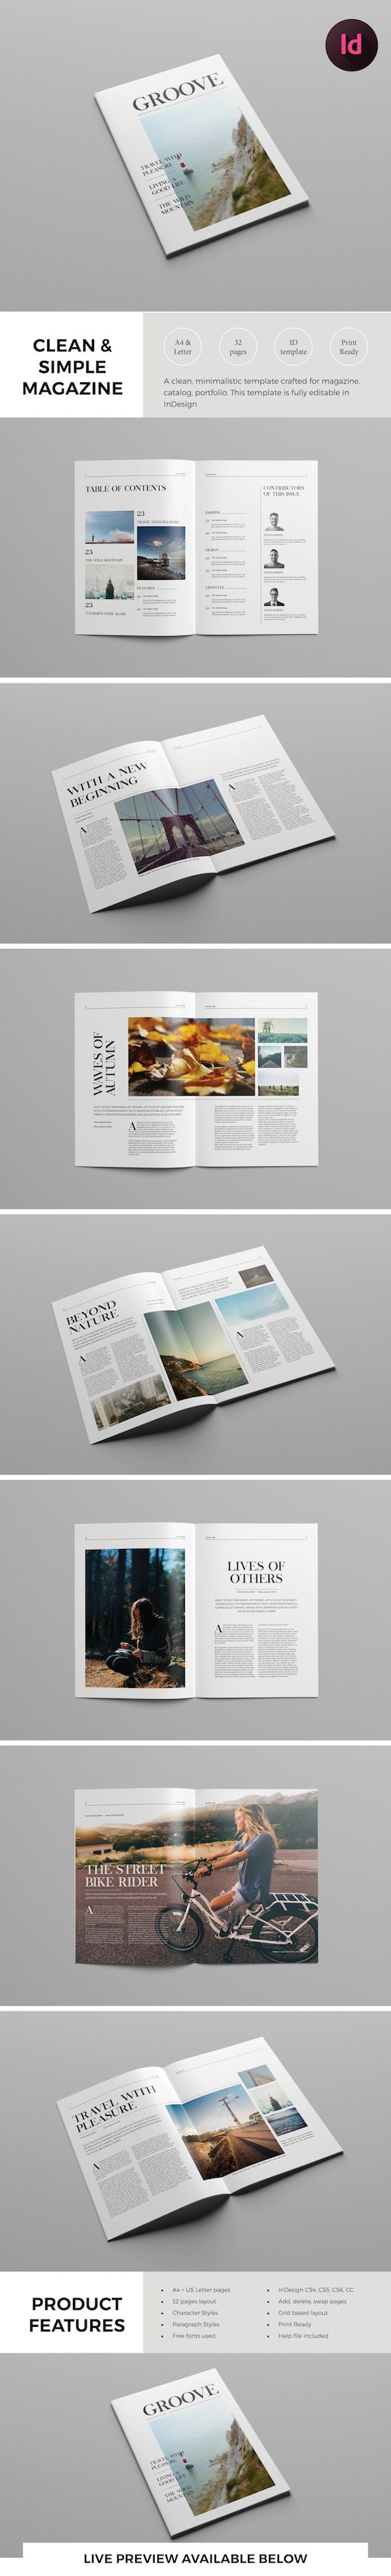 Clean Magazine Template on Behance